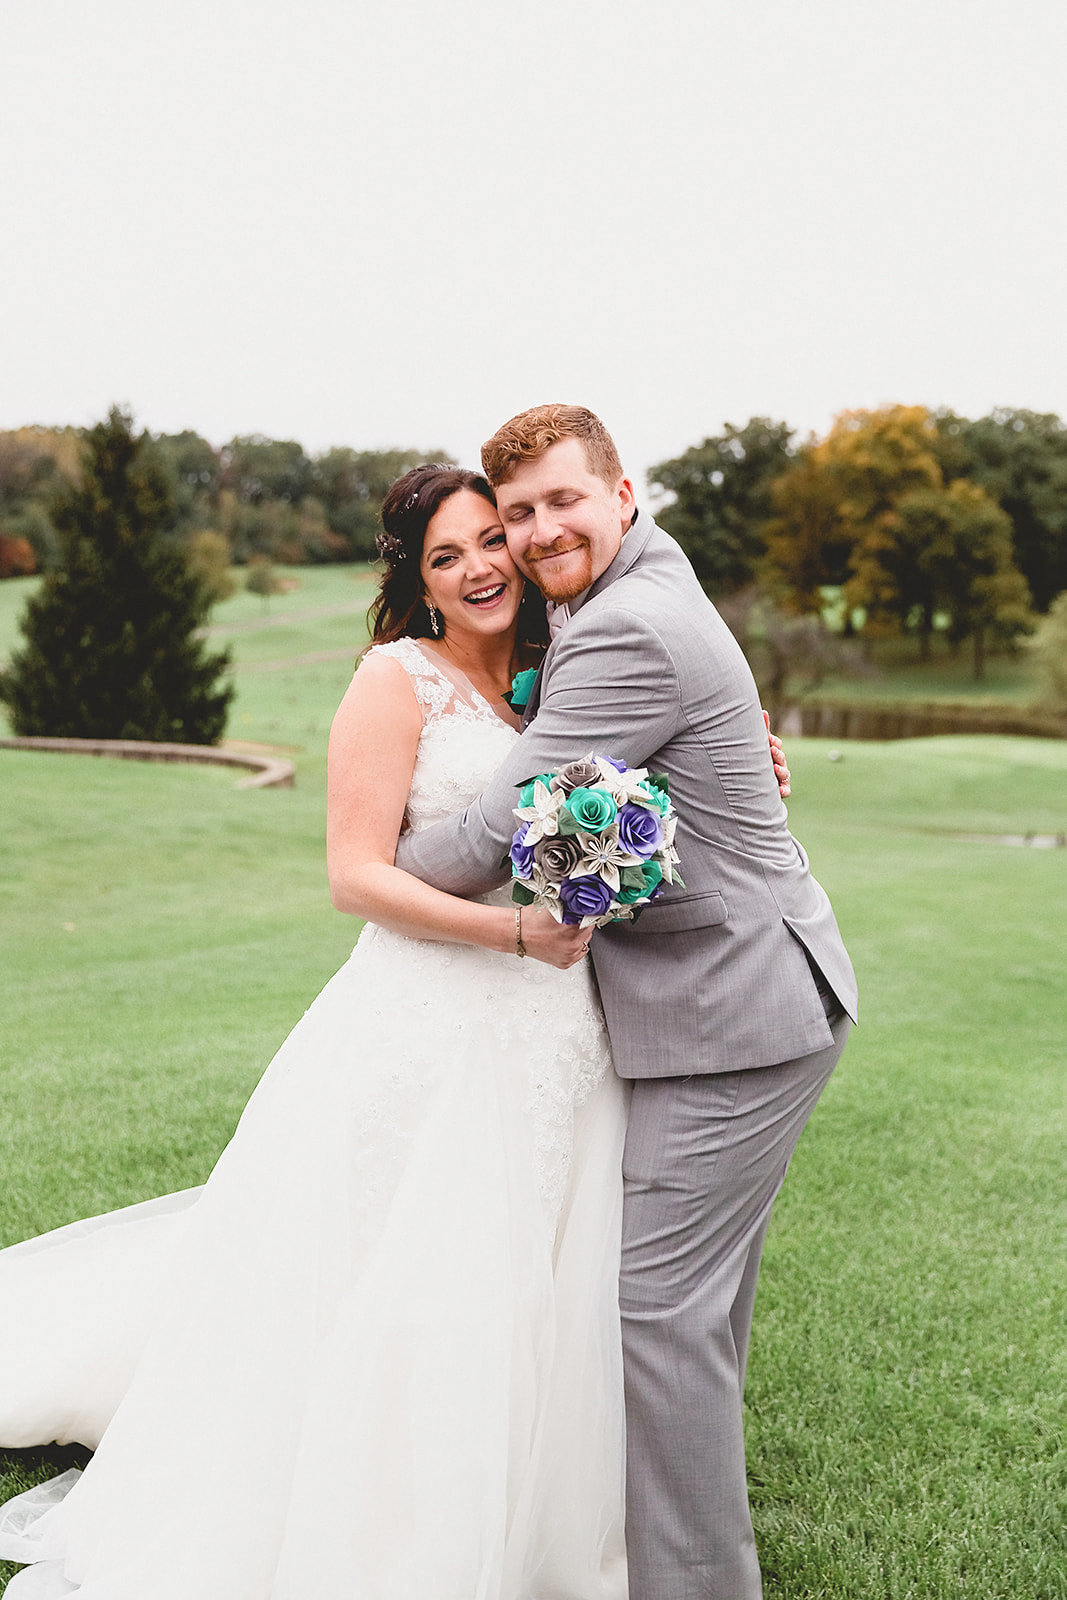 Sarah Crost Phtotography - Illinois Wedding Photographer - Longo-1